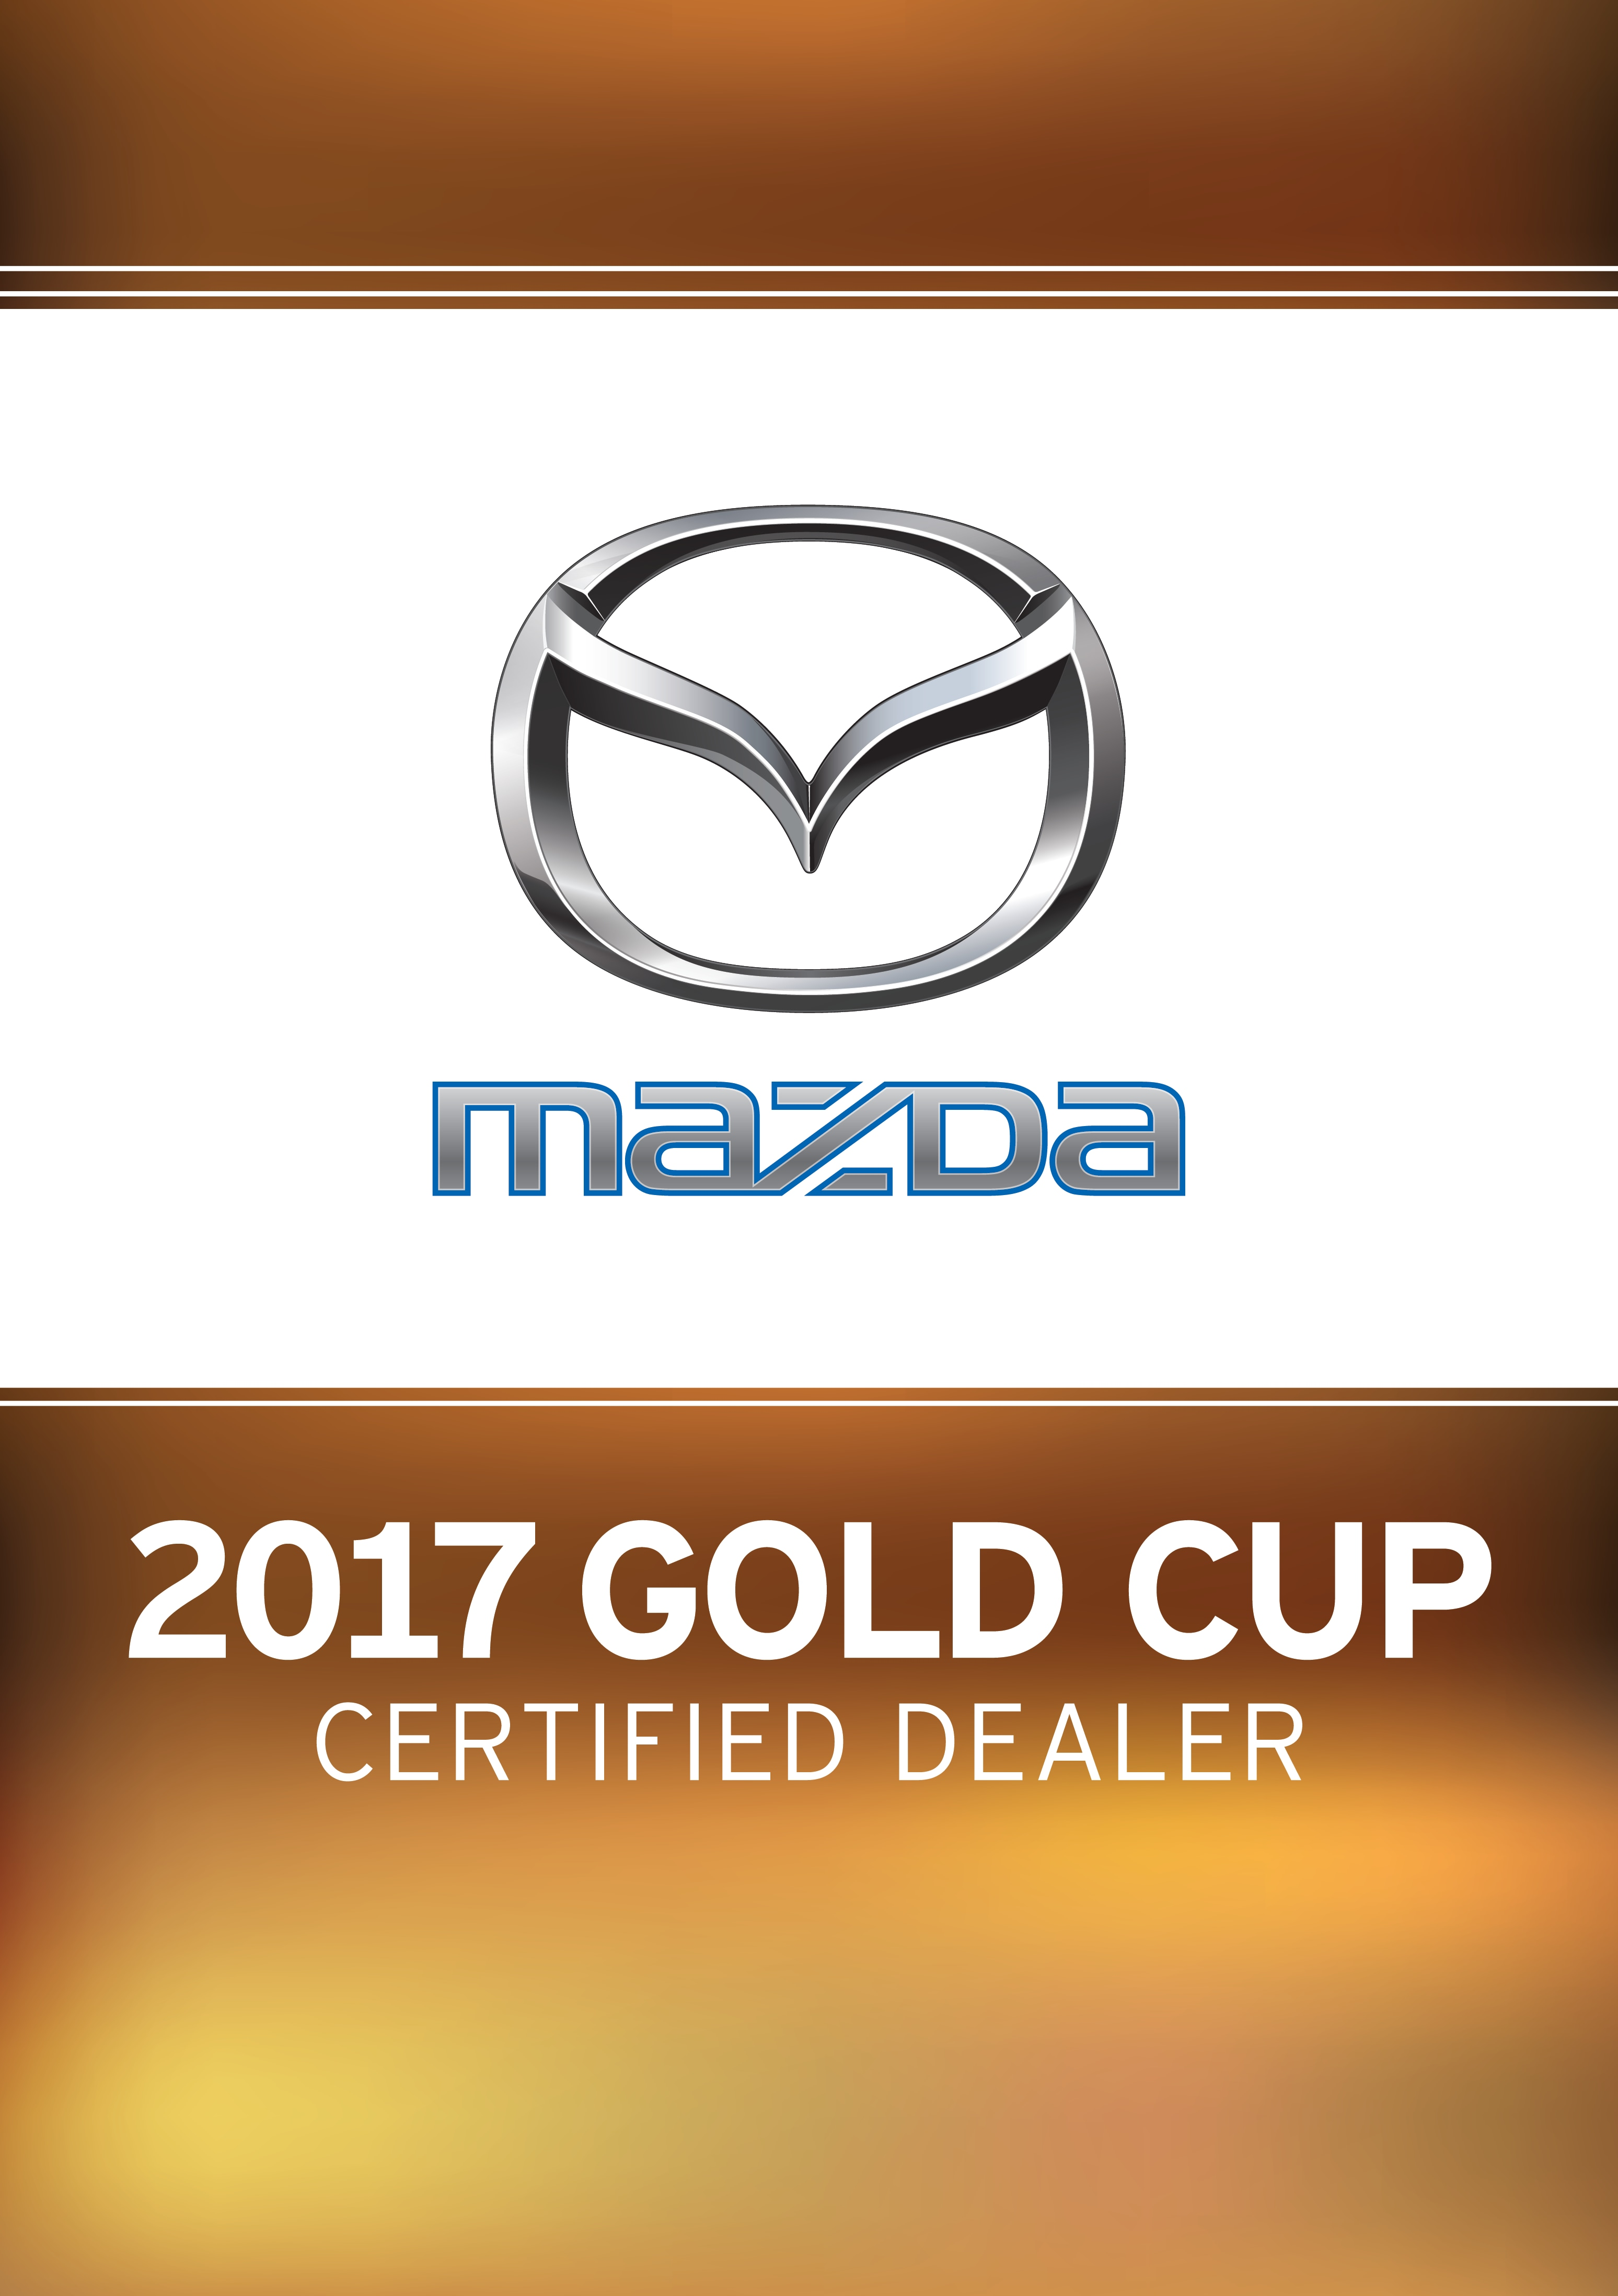 Mazda Service At Gullo Mazda Mazda Car Repair In Conroe - Mazda car repair